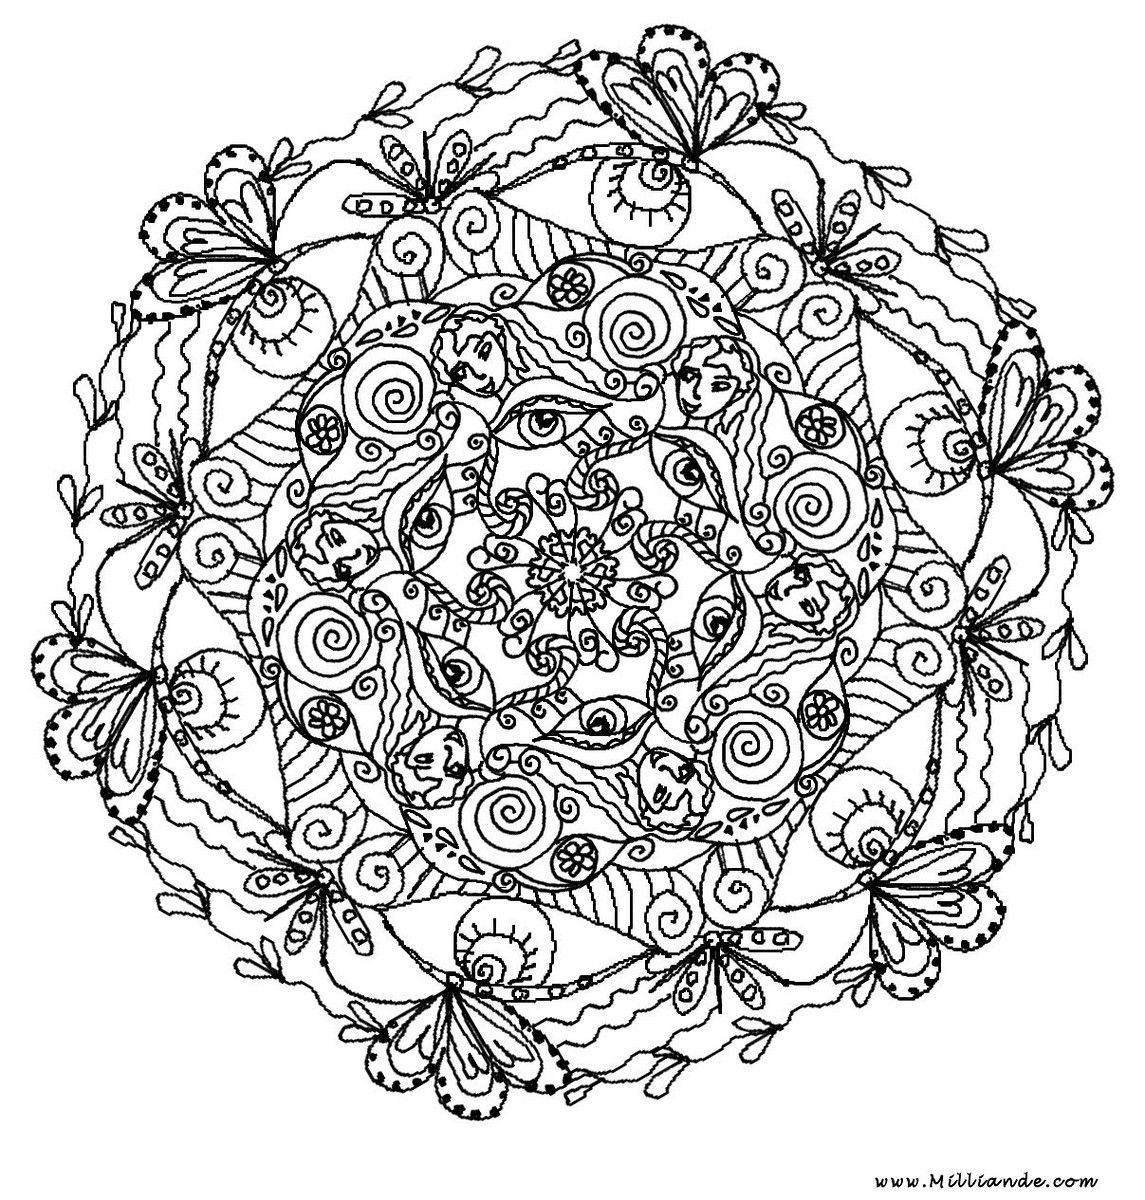 Pages to color for adults - Center Yourself With Mandalas Coloring Pages